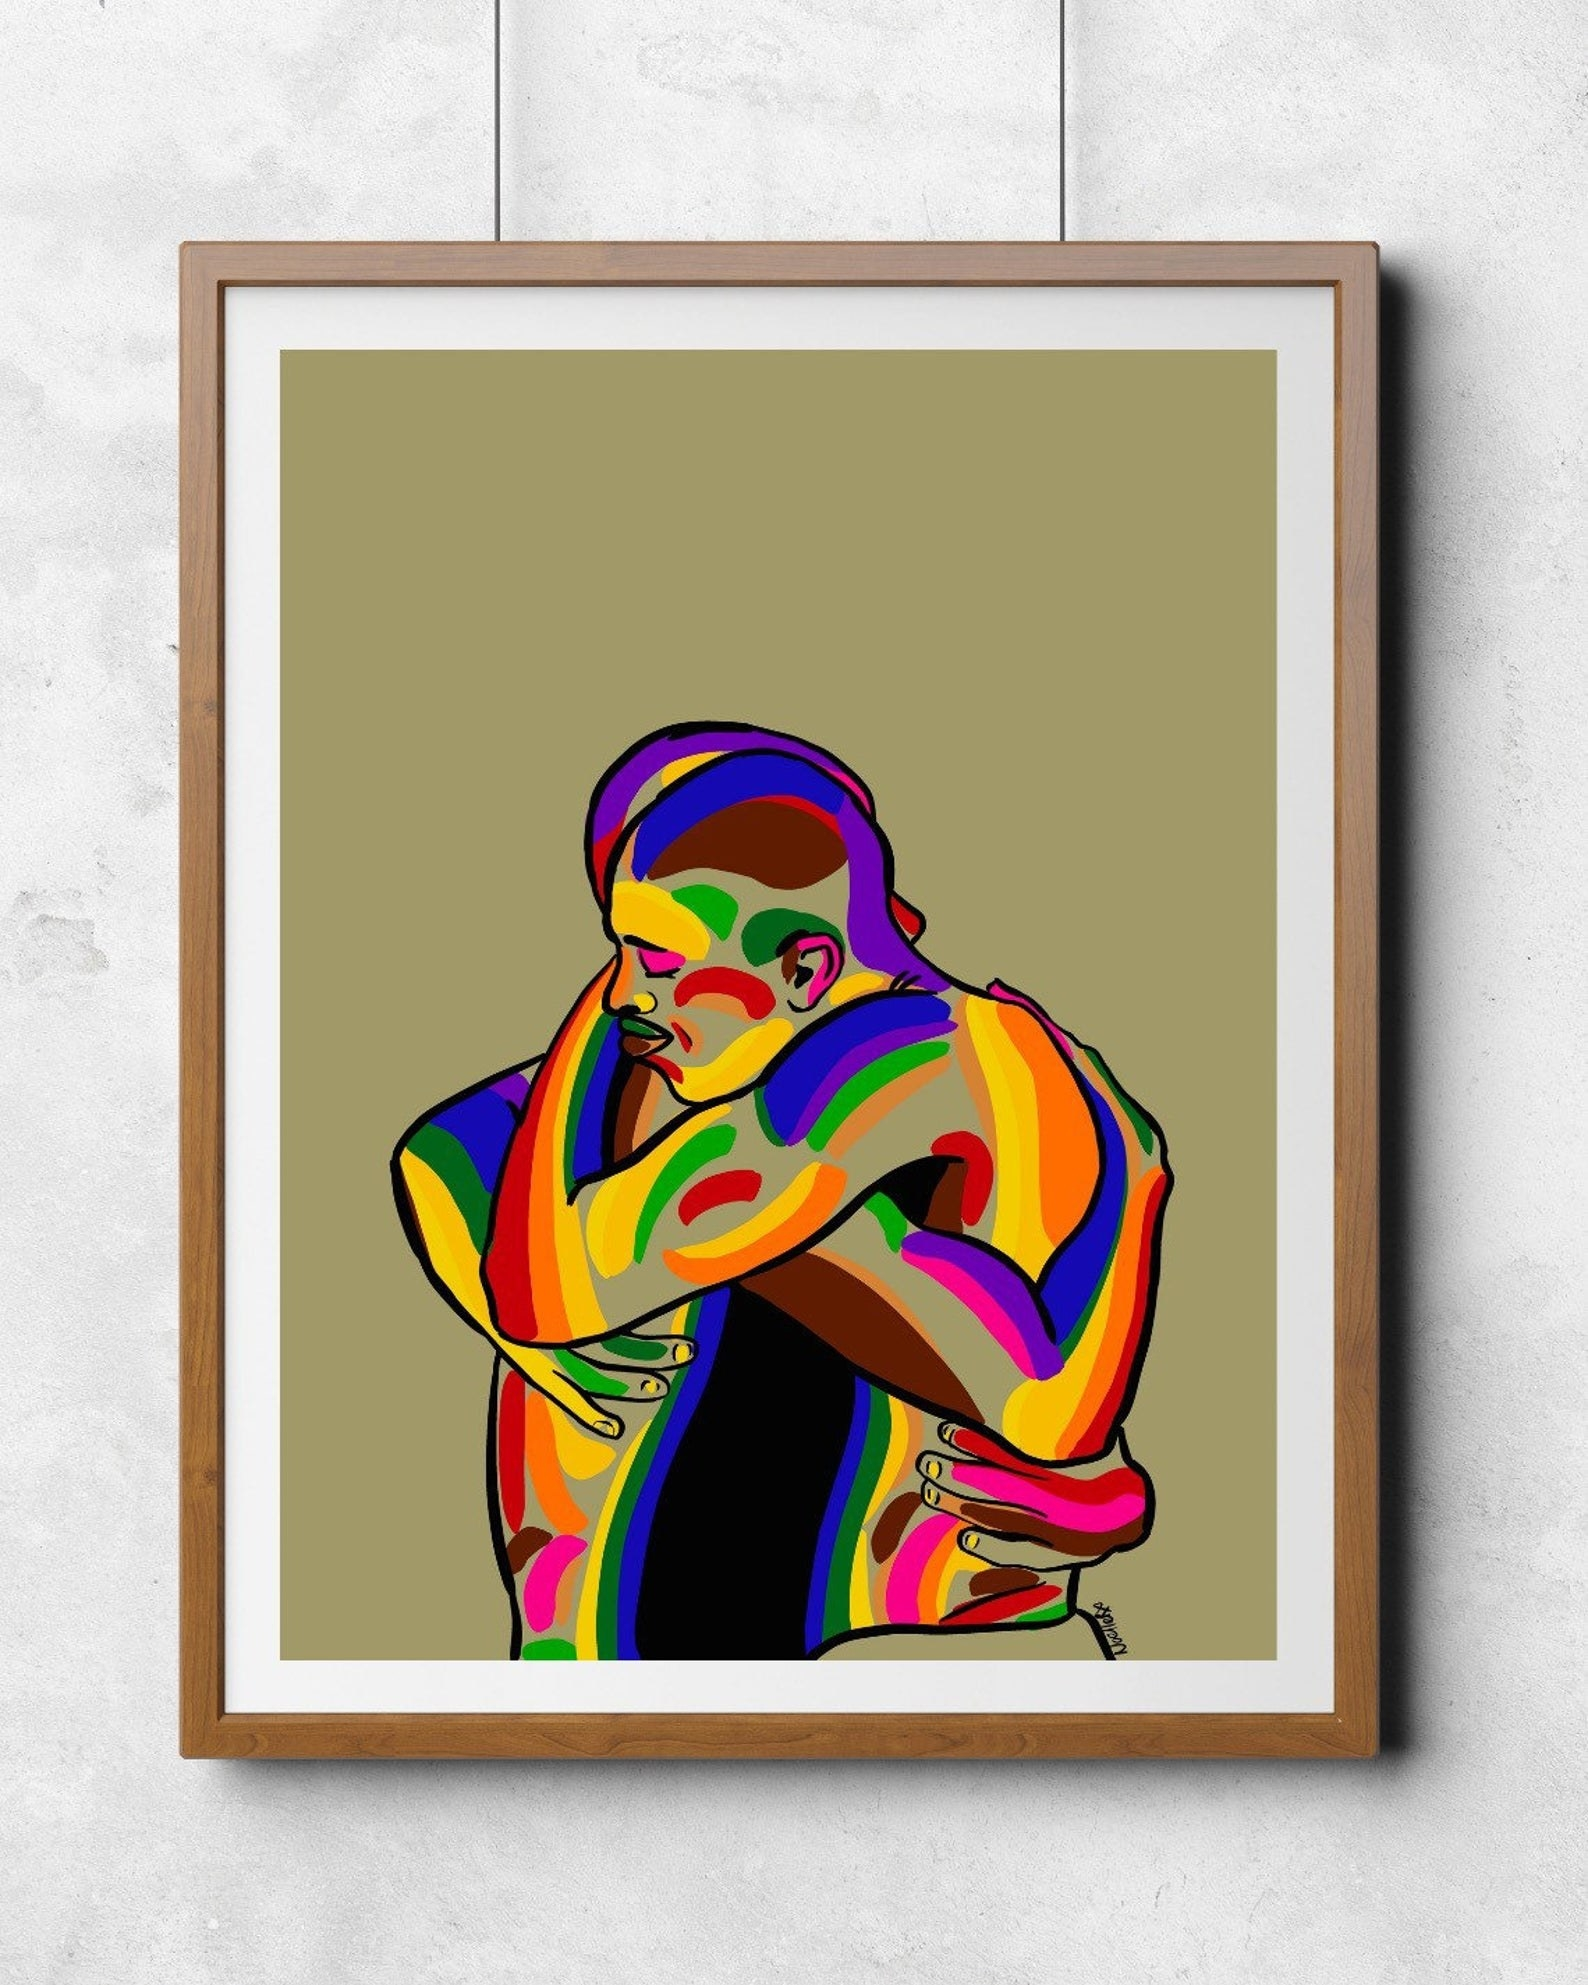 illustrations of two people hugging with rainbow coloring all over them